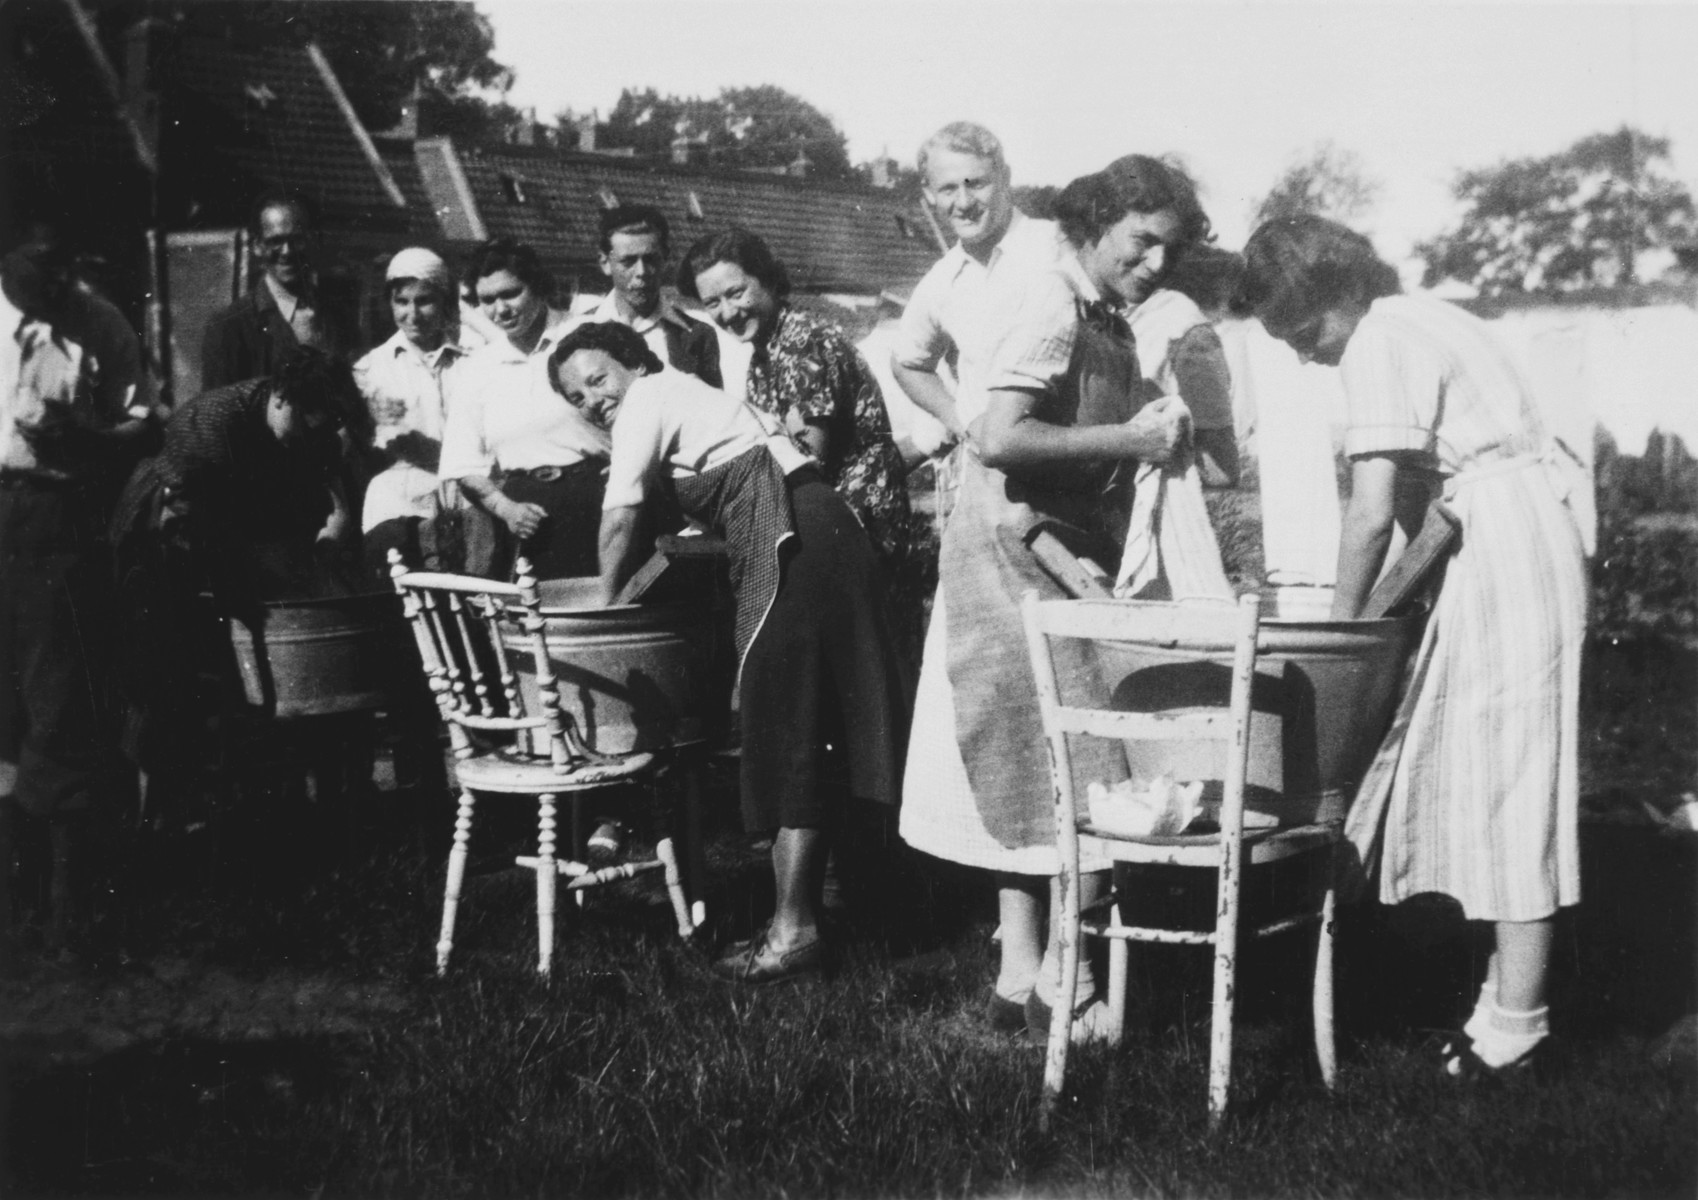 Young Zionists do laundry in a kibbutz hachshara in Loosdrecht.  Among those pictured is Letty Rudelsheim.